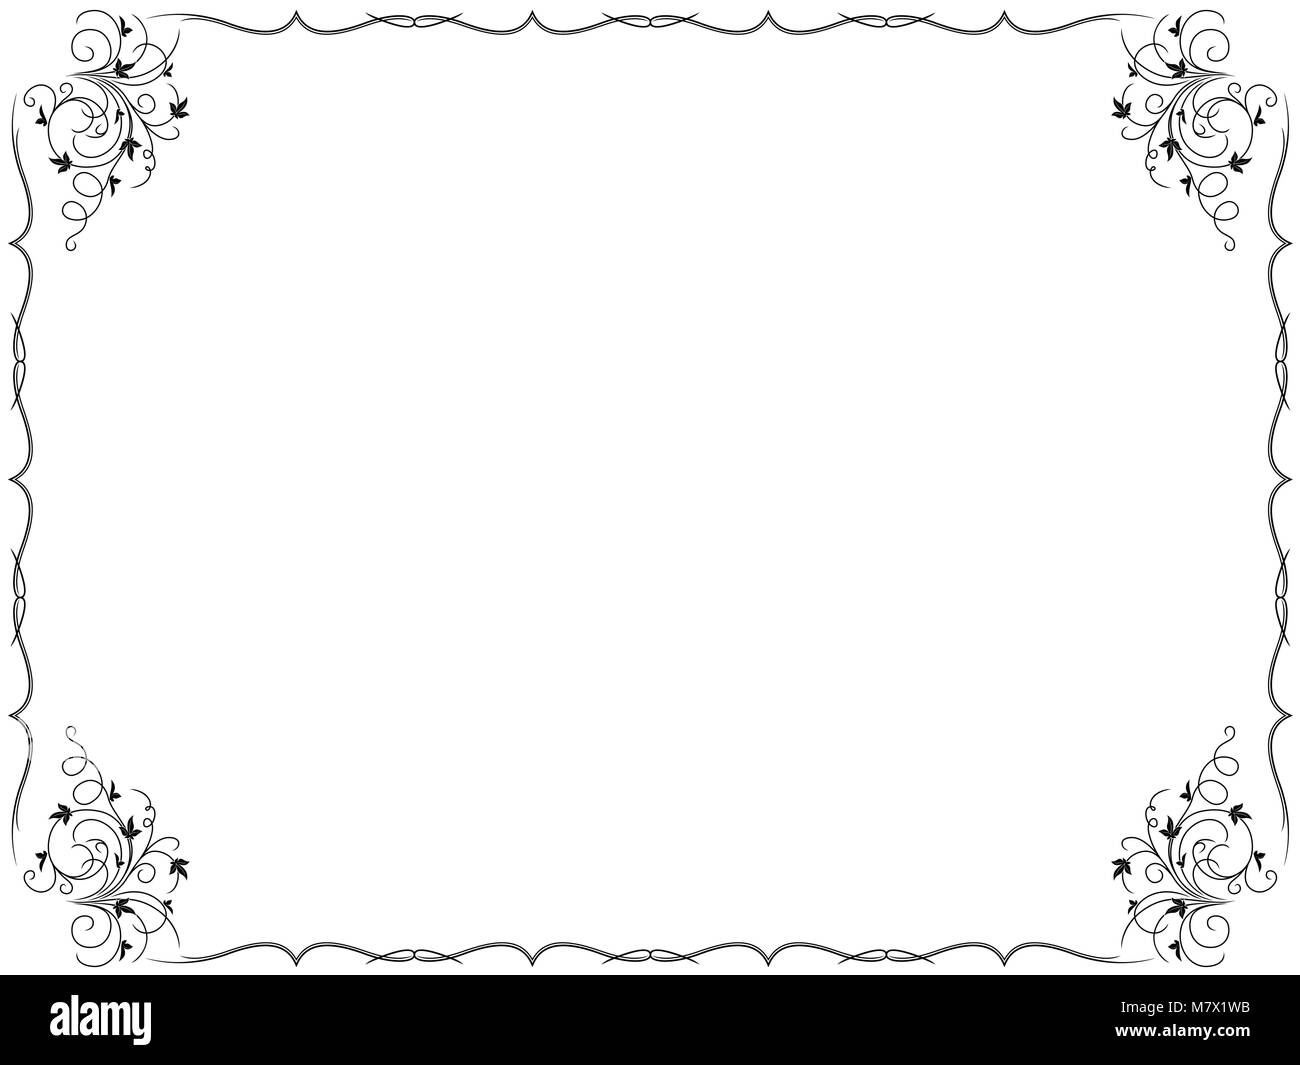 Floral frame background with swirl border design elements, hand ...